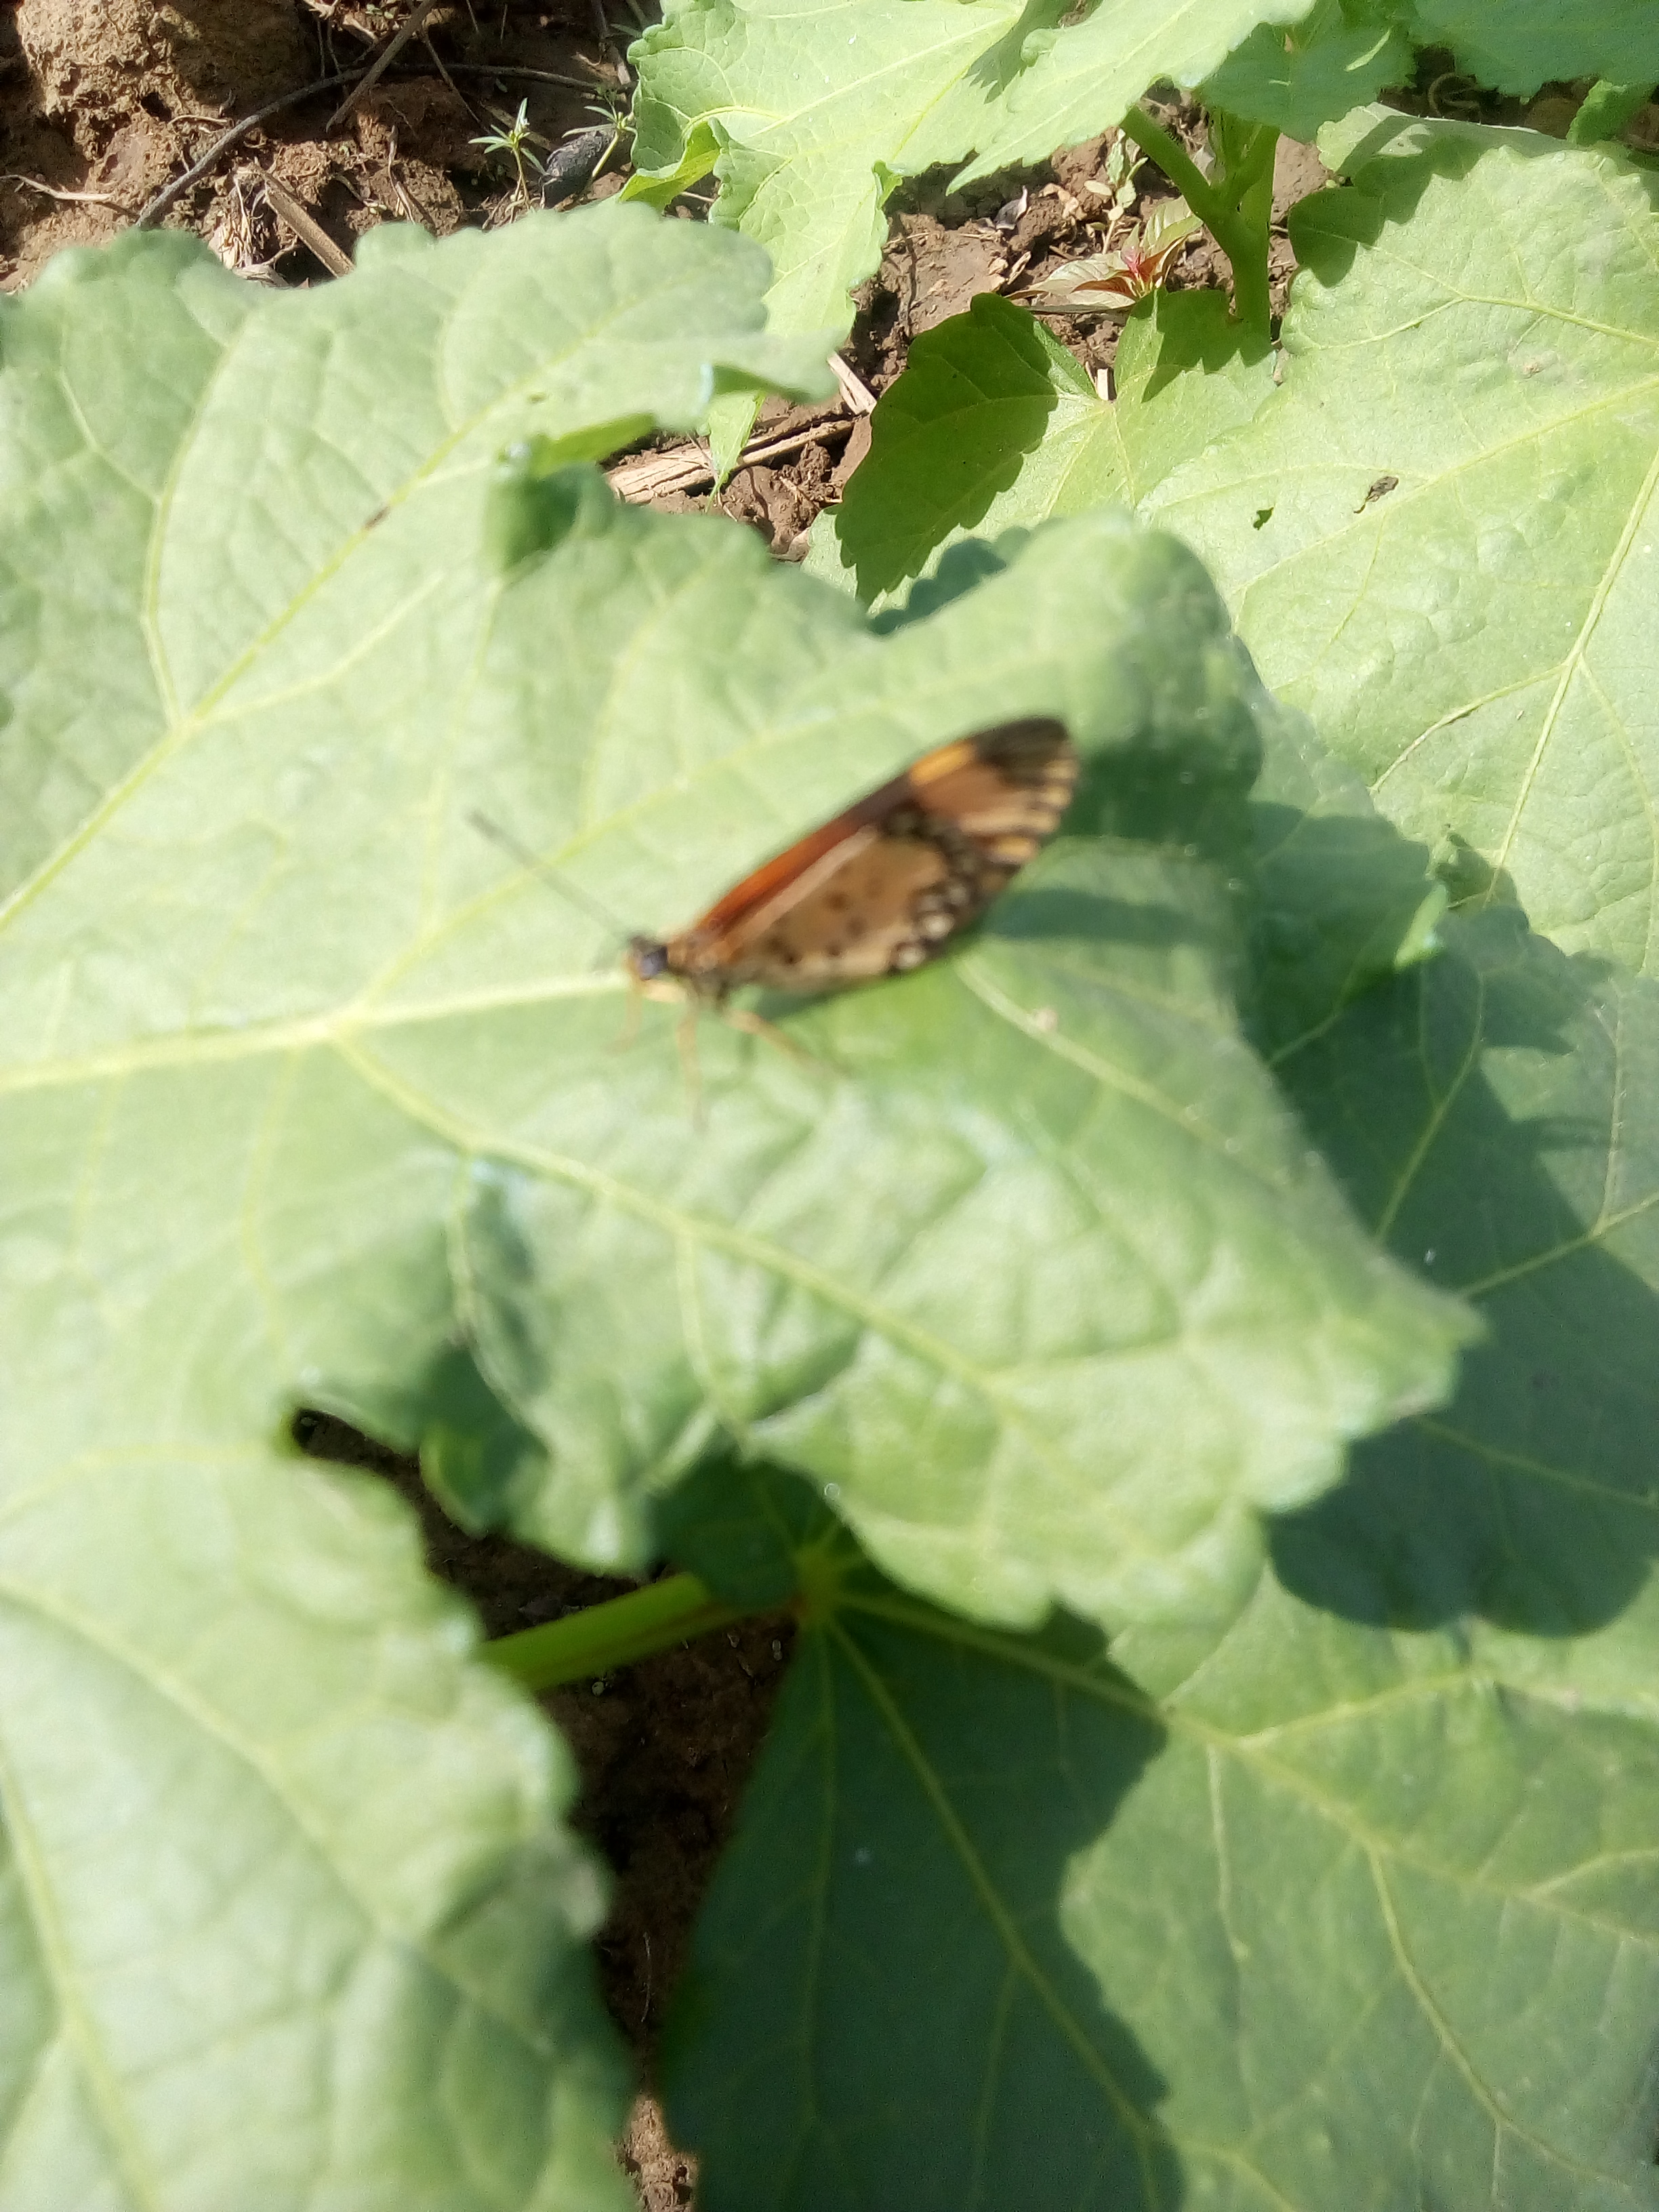 An Insect on an okra leaf